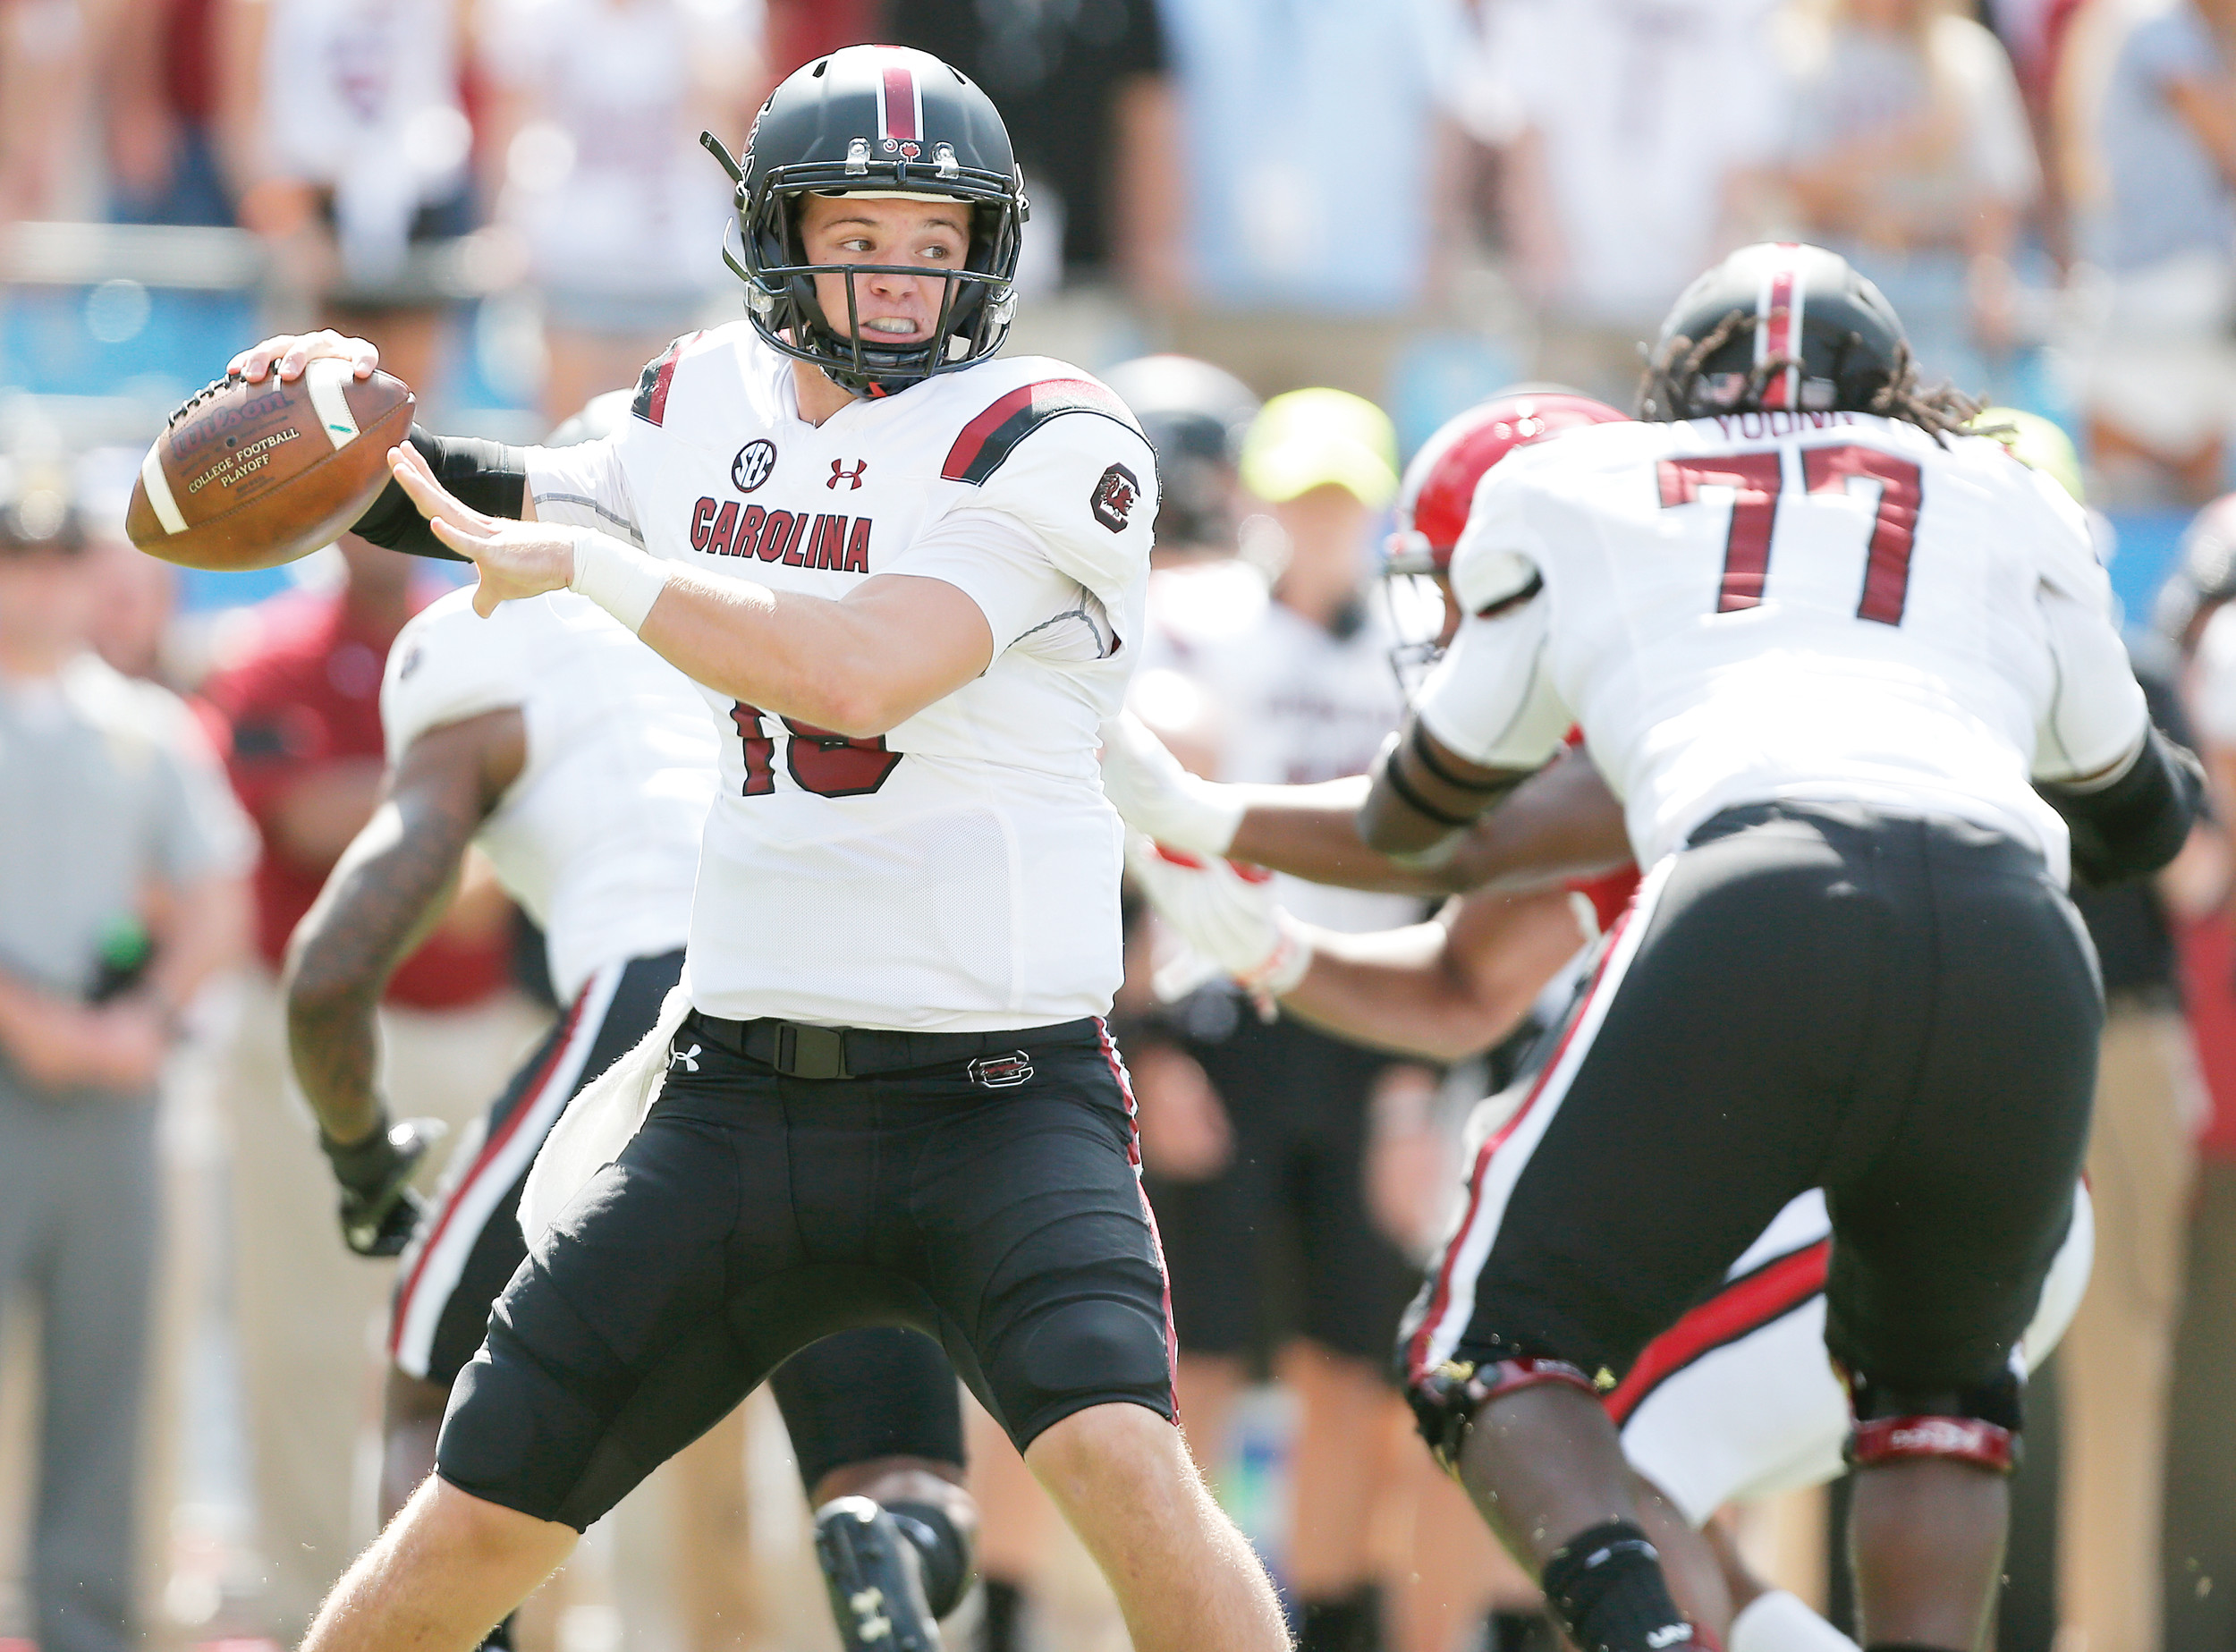 With their 35-28 victory over N.C. State last week, South Carolina quarterback Jake Bentley, left, and the rest of the Gamecocks are carrying momentum into their Southeastern Conference opener at Missouri this Saturday.